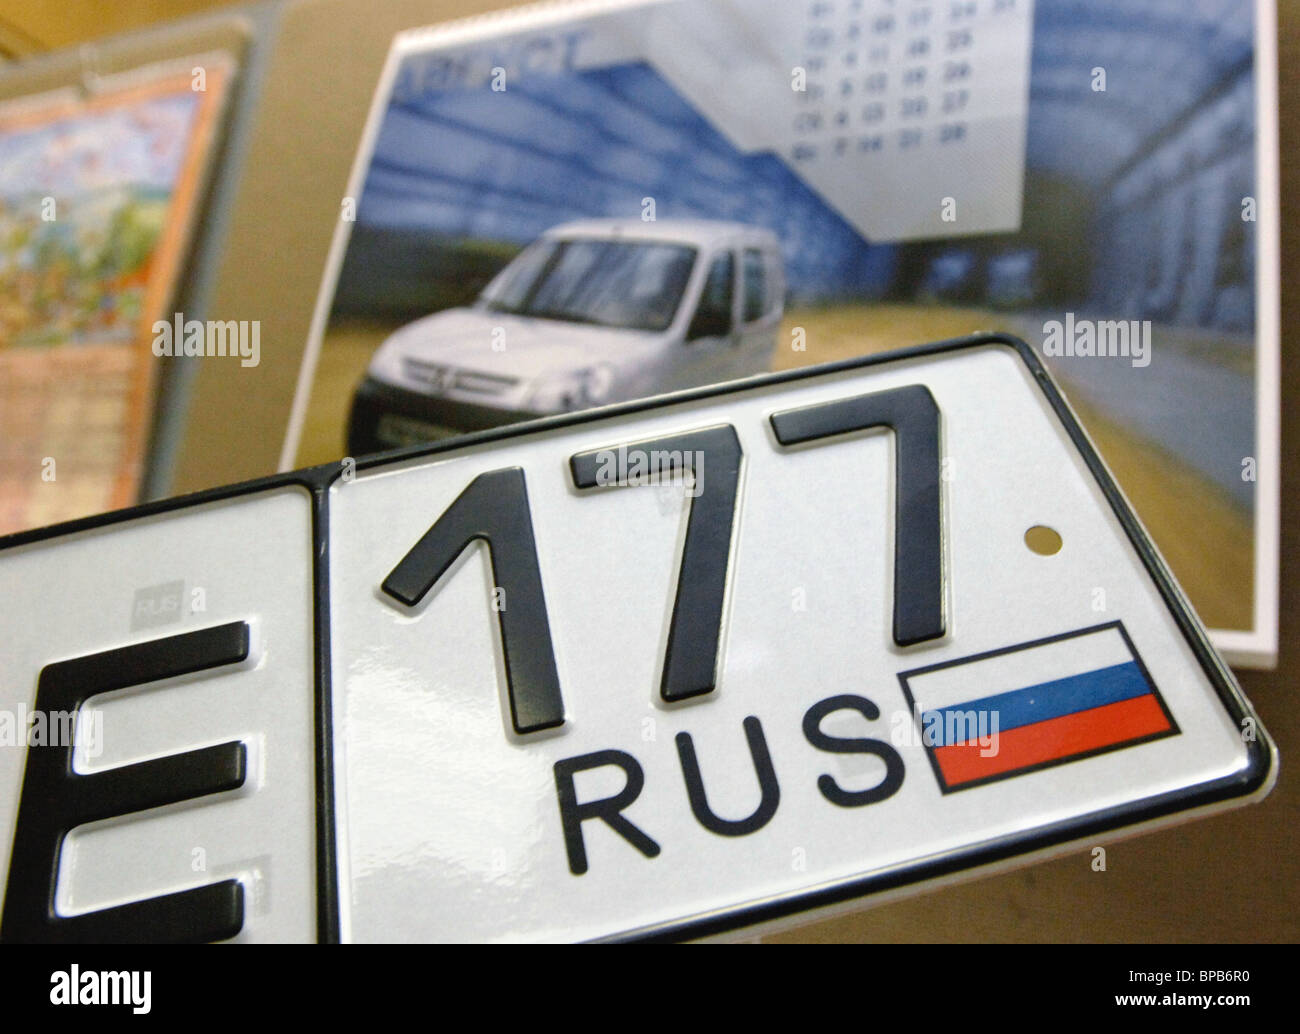 Police Numbers Stock Photos & Police Numbers Stock Images - Alamy